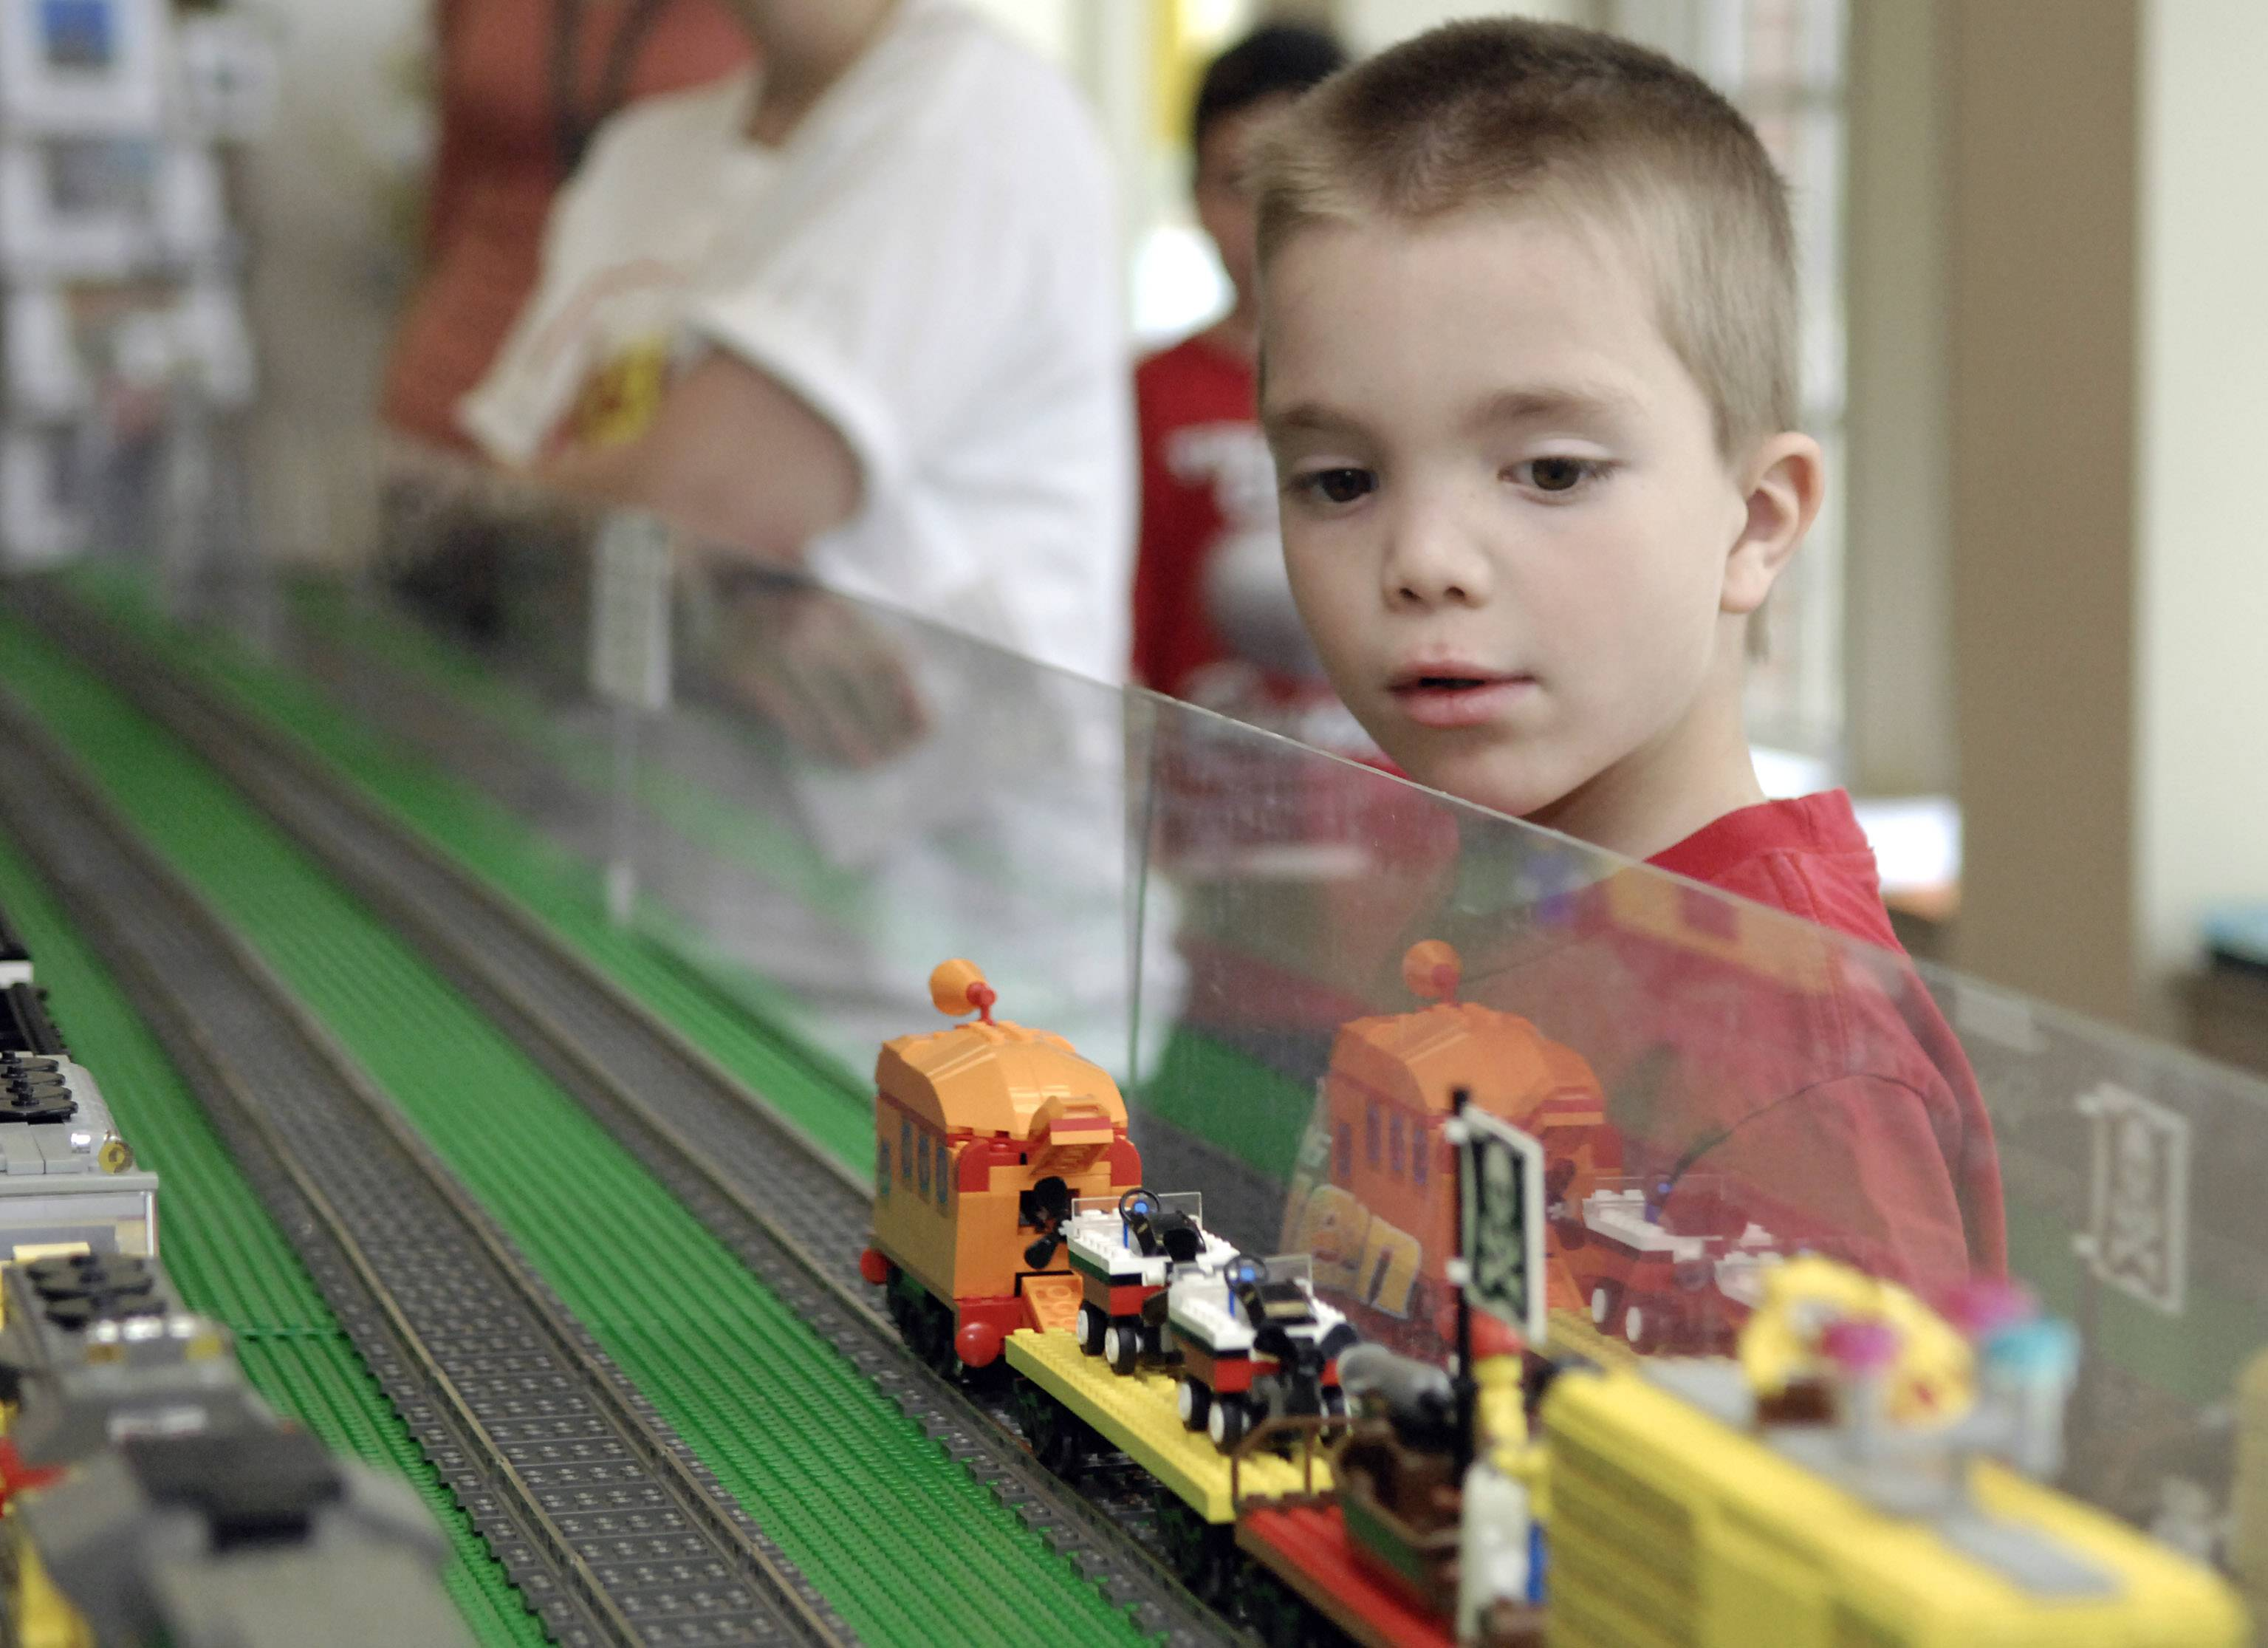 The Northern Illinois Lego Train Club displays a wide variety of Lego model buildings and a running Lego train set at the Lego Show at the Geneva History Center.